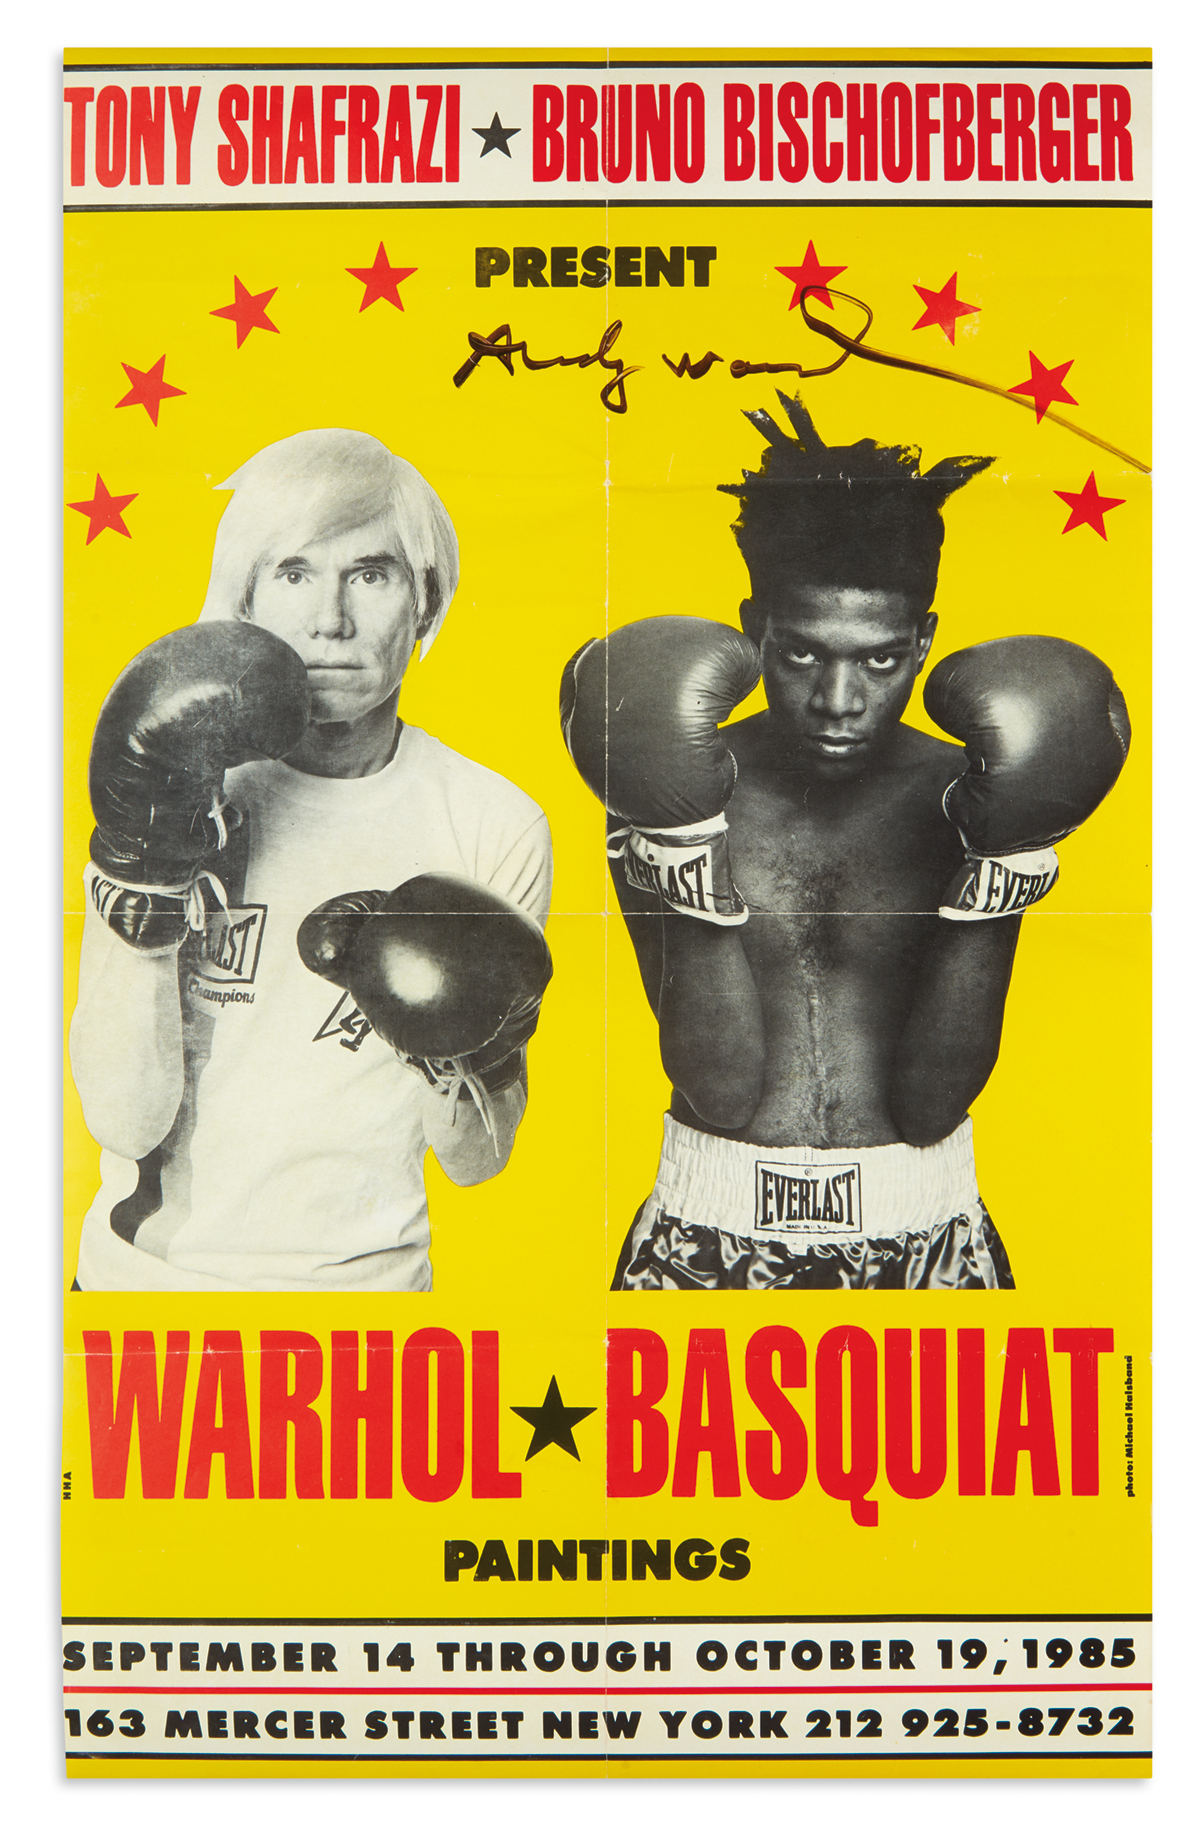 WARHOL, ANDY. Signature on a poster for the 1985 Warhol-Basquiat exhibition at the Tony Shafrazi Gallery.